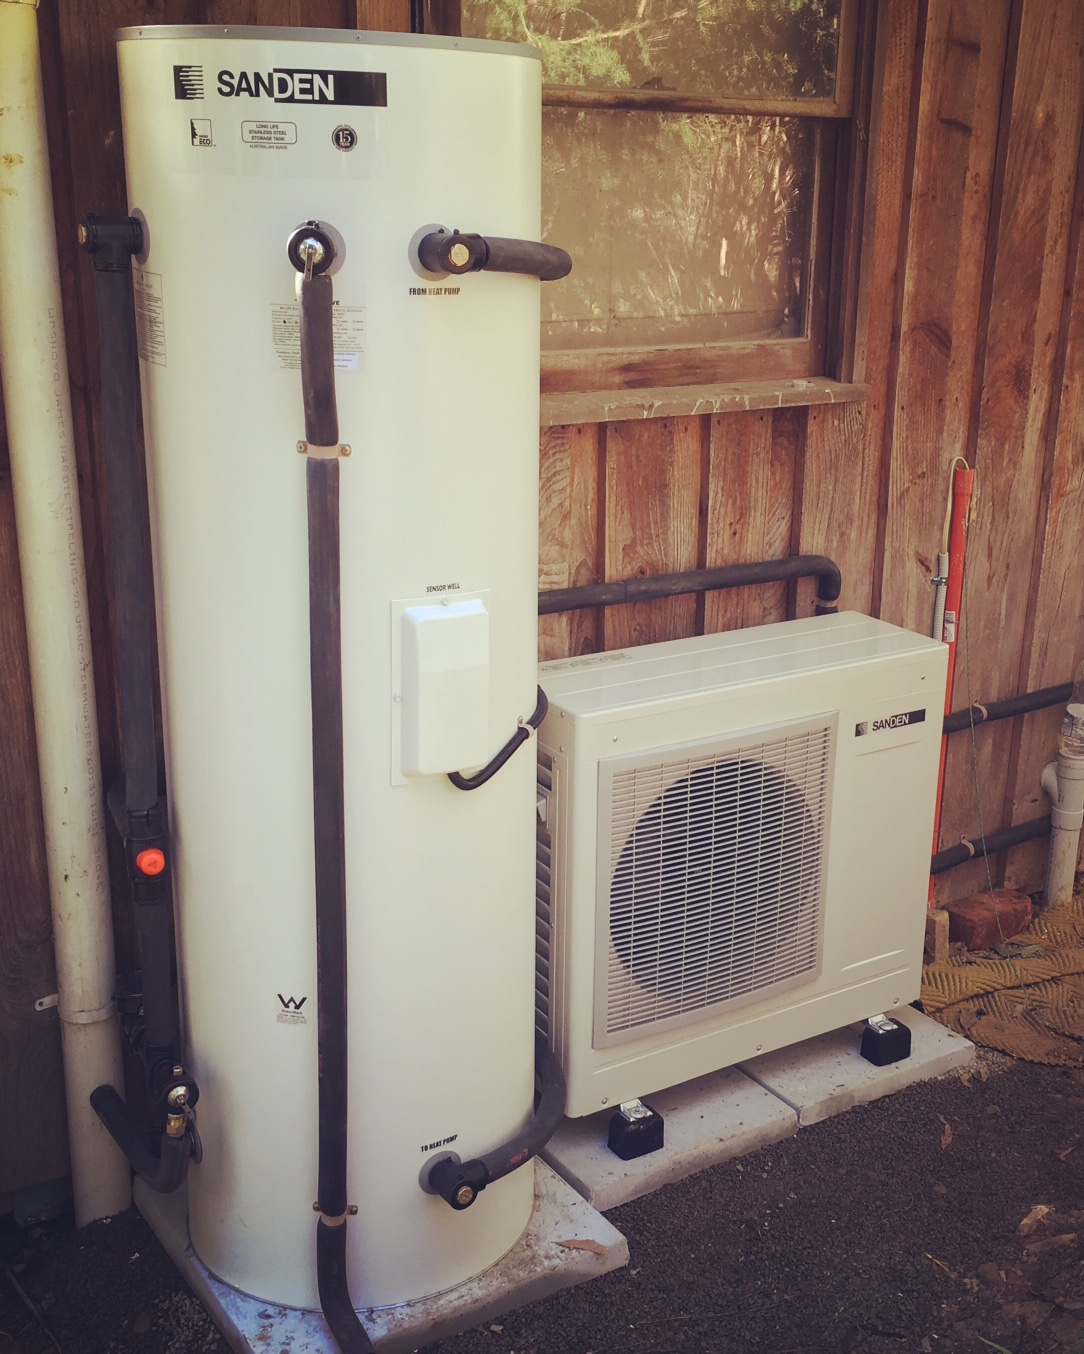 Sanden 250ltr CO2 heat pump. Solar hot water without the sun!